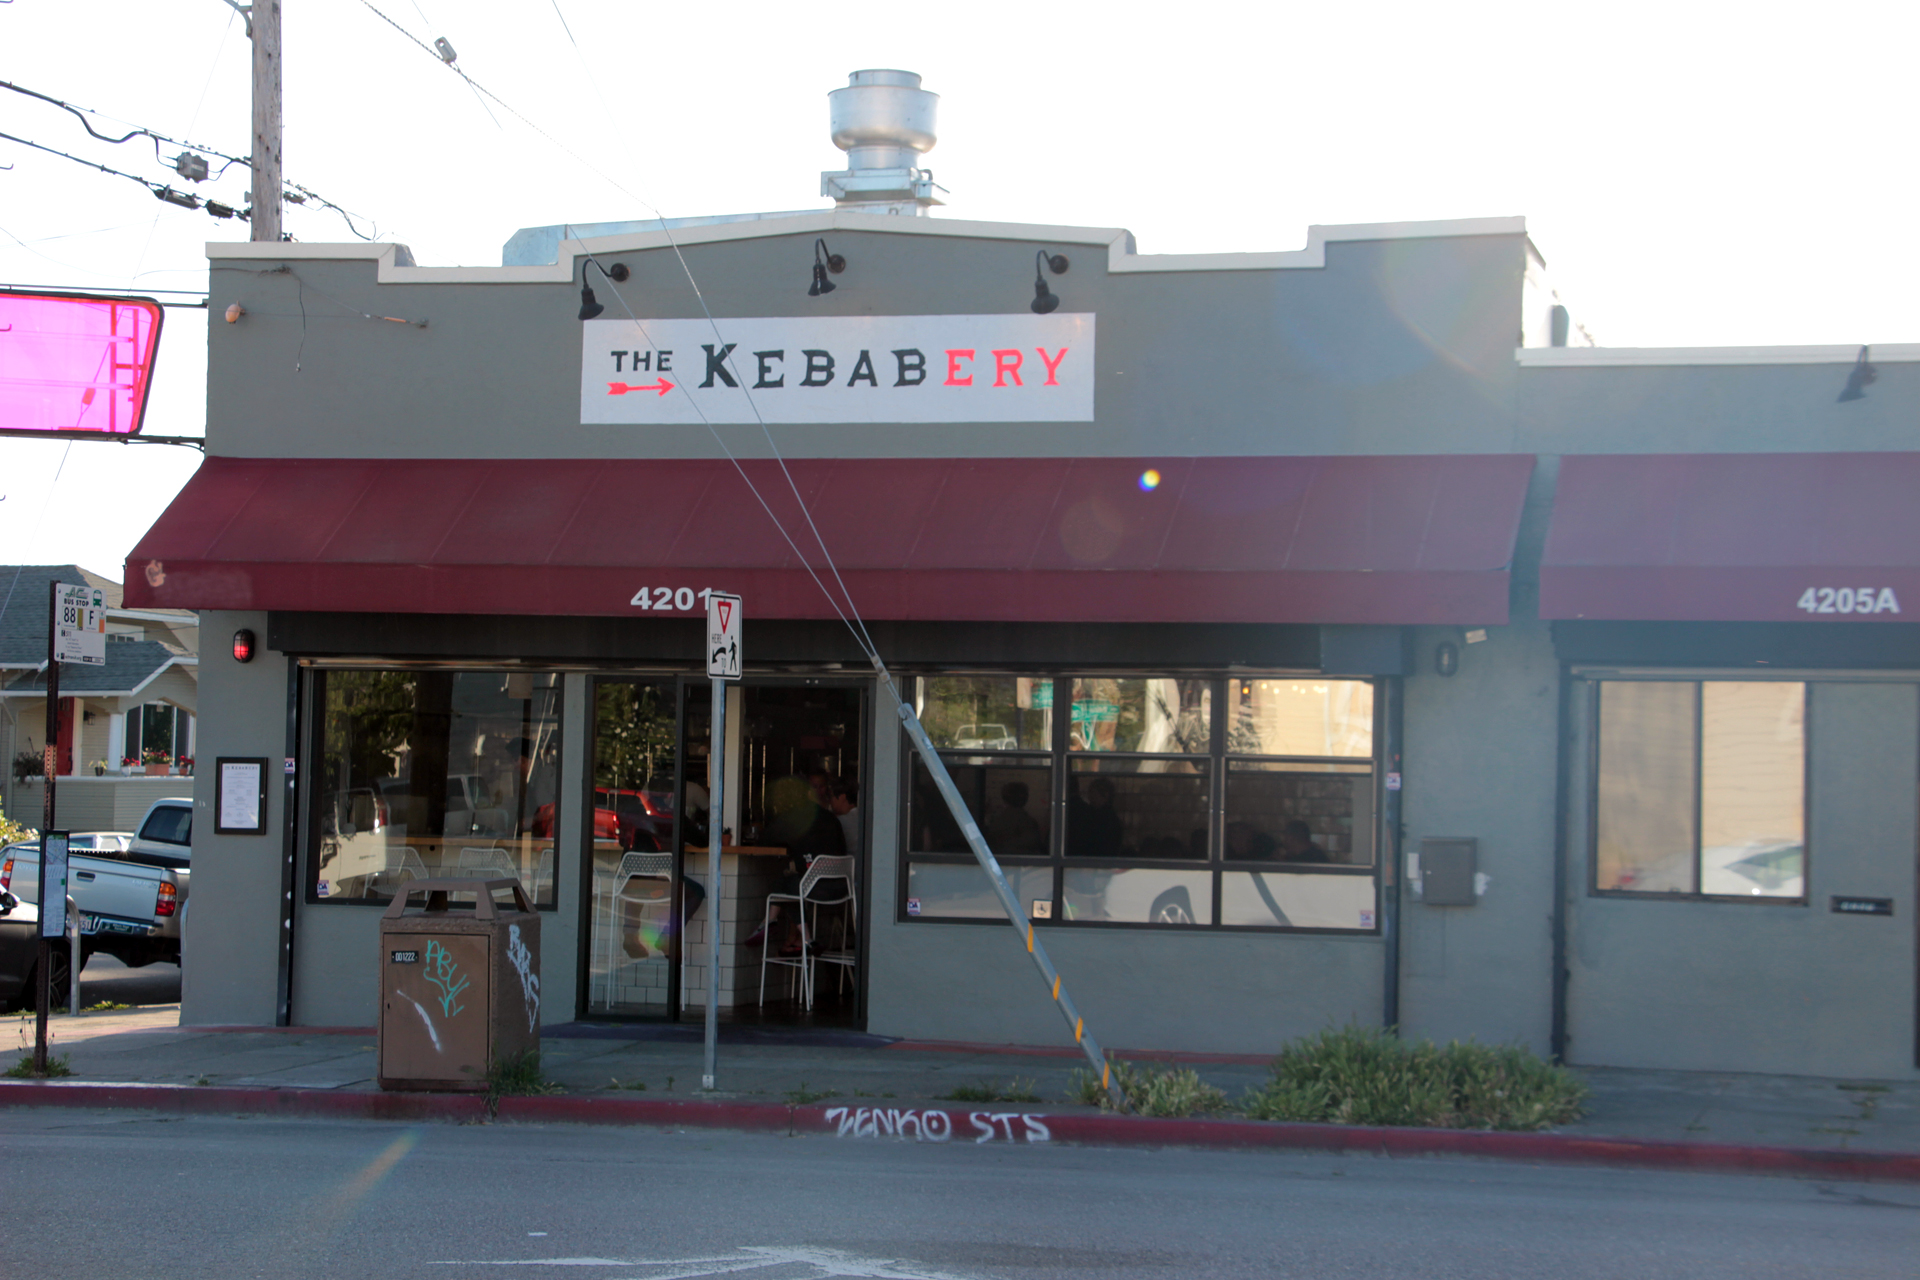 The Kebabery exterior.